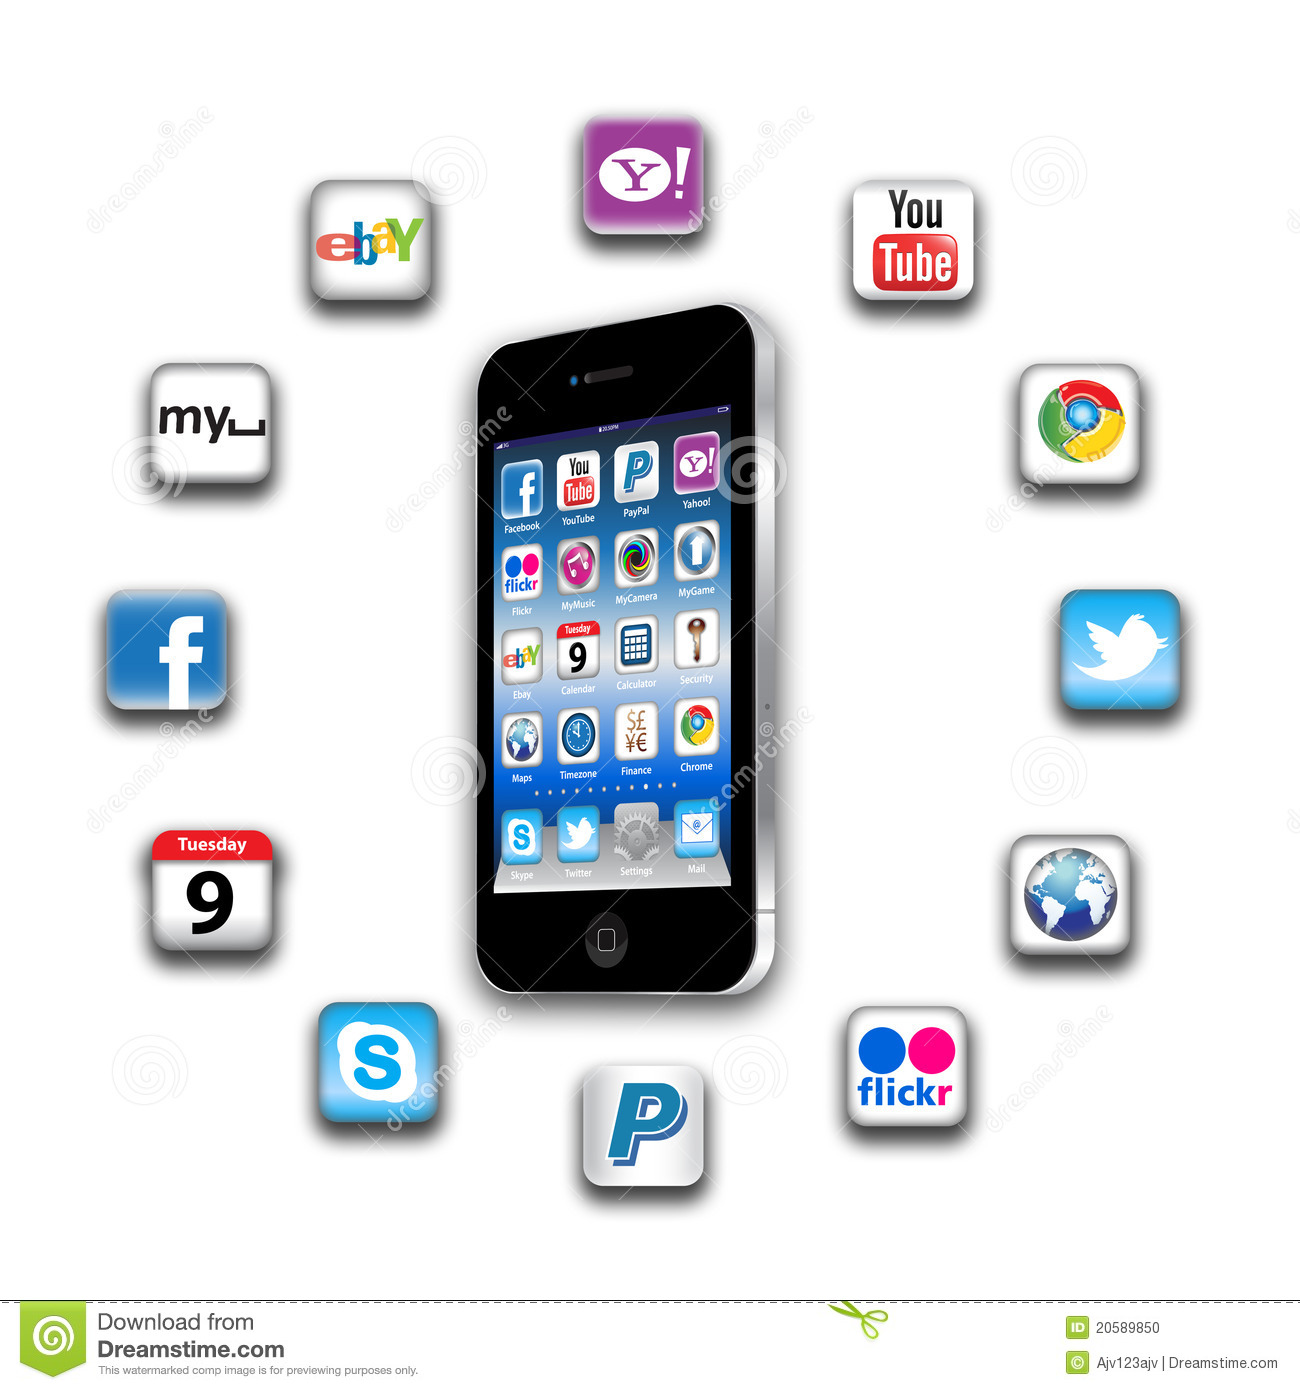 What s apps are on your mobile network today?